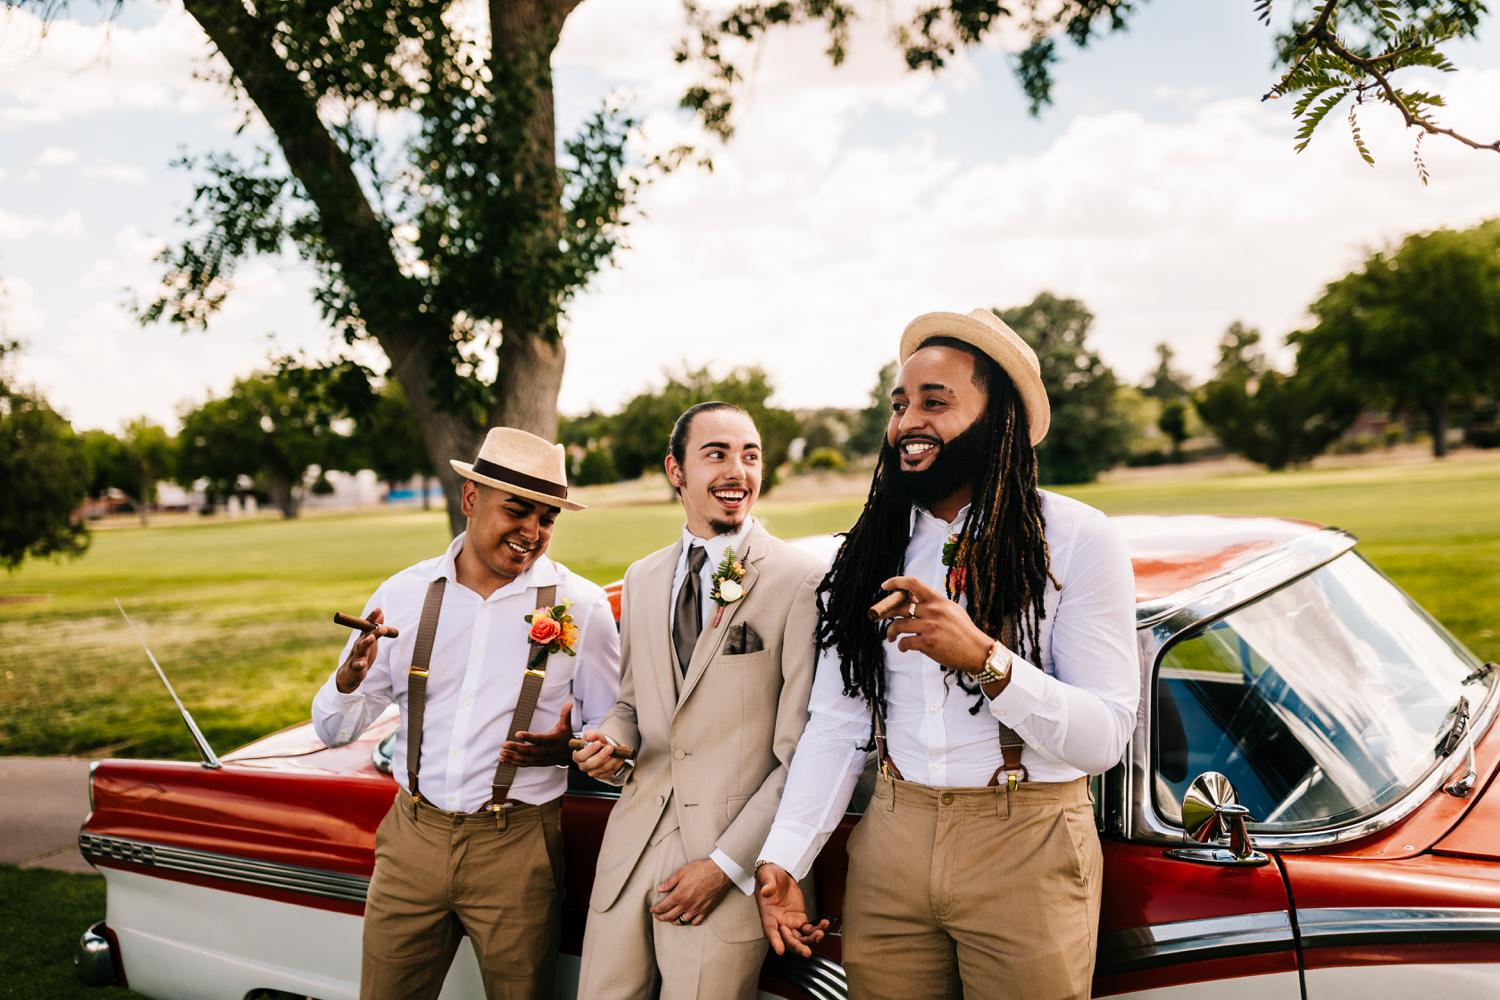 Groomsmen laughing with vintage car at tropical themed wedding in Albuquerque